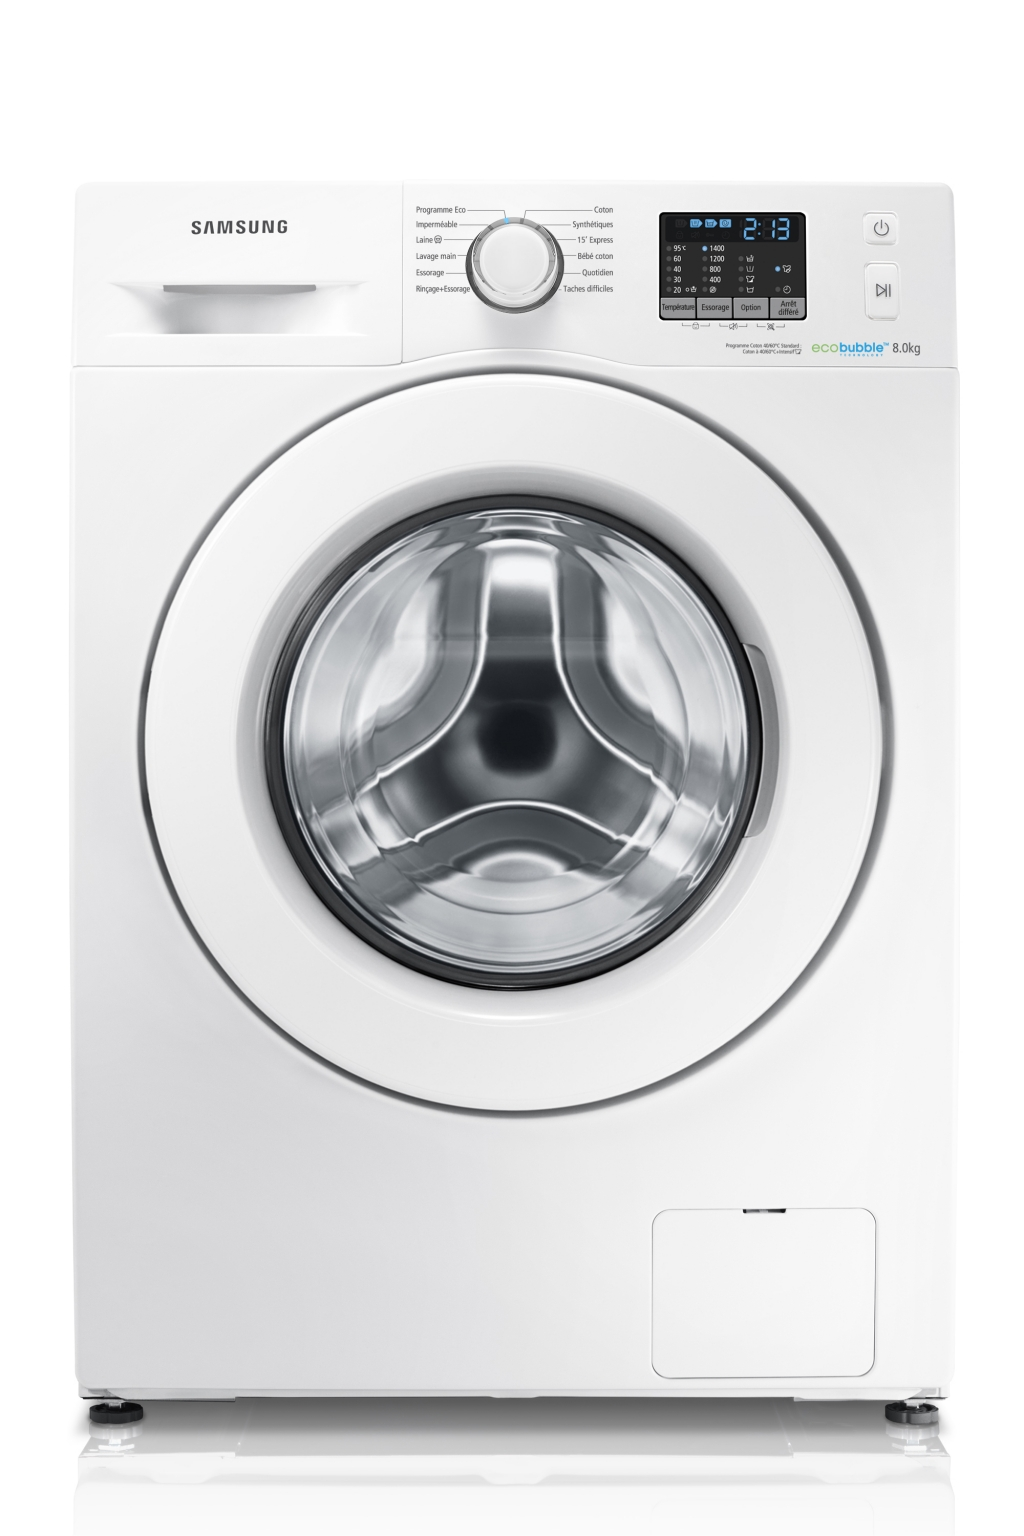 Samsung Bubble Drum Washer Receives Rave Review from Europe